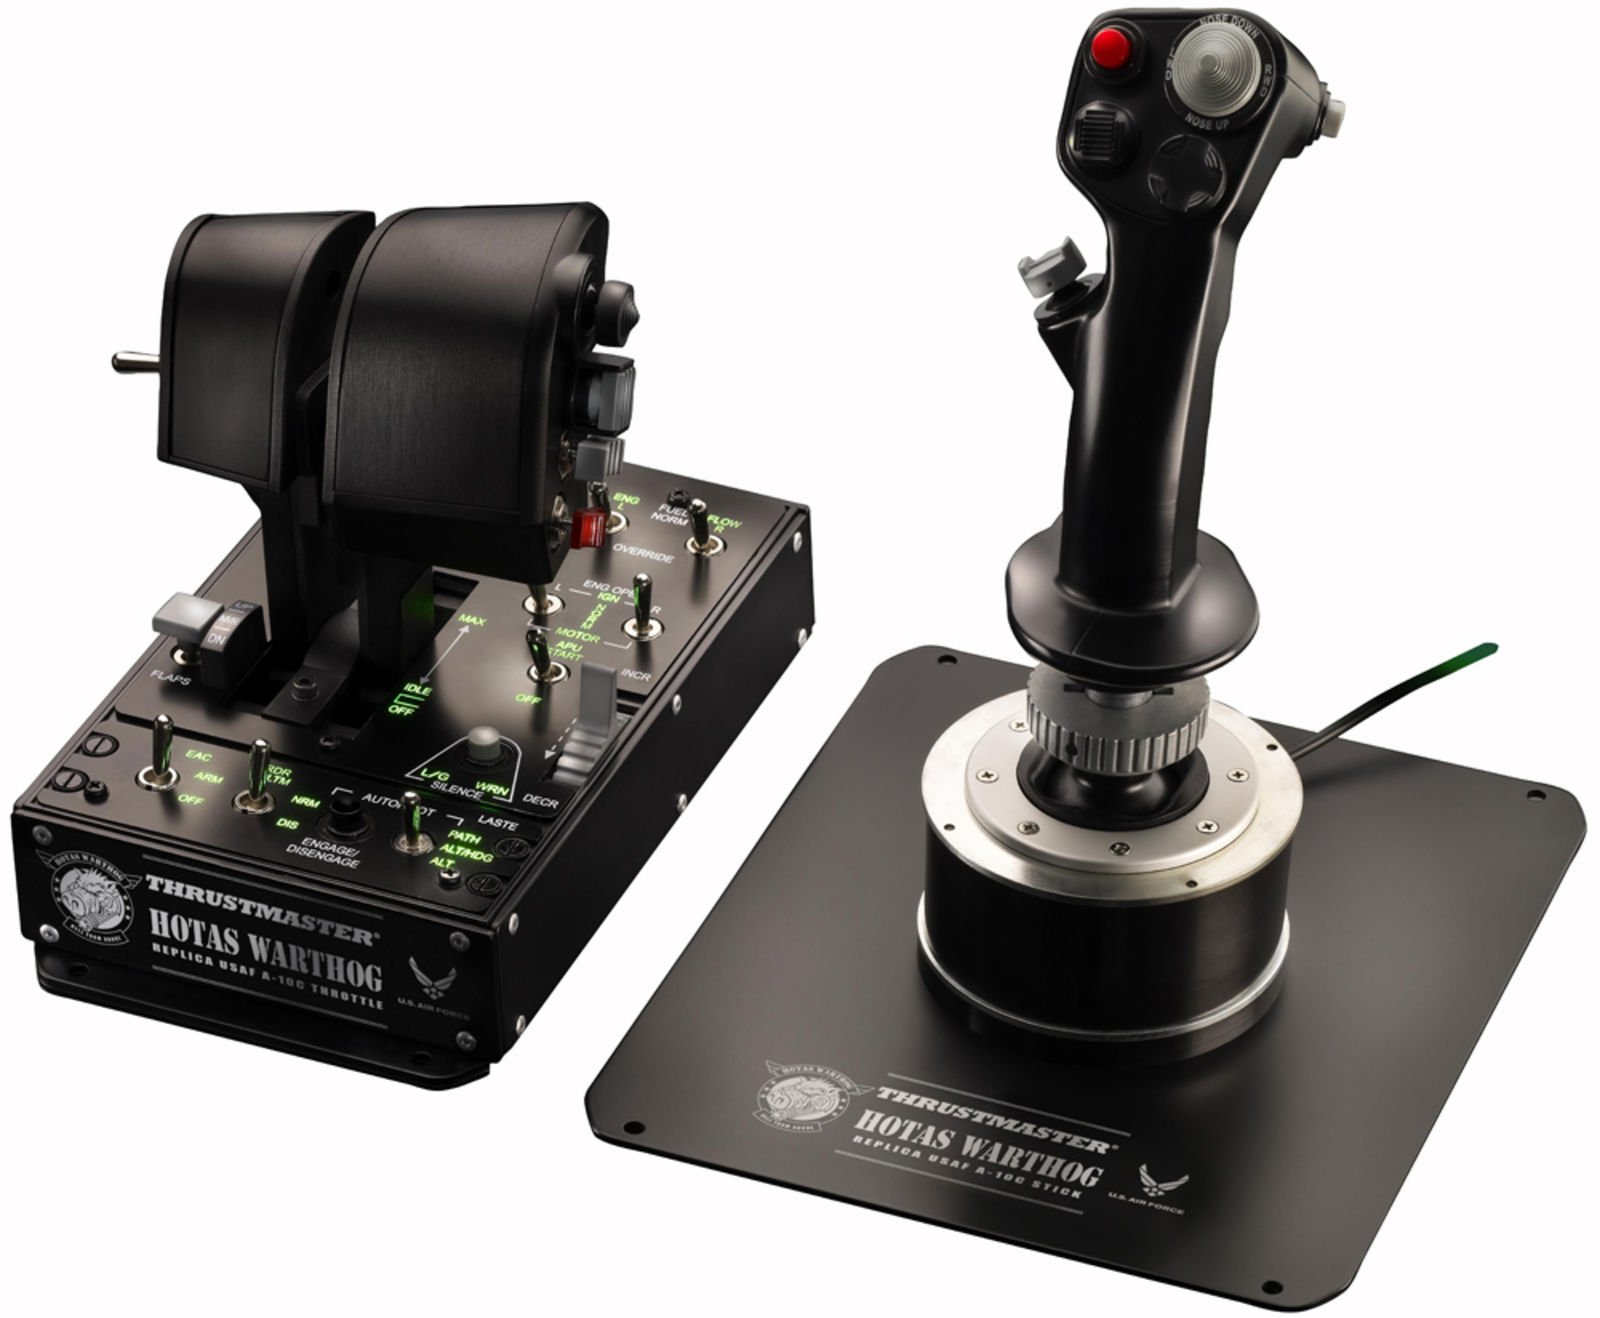 The best HOTAS for Flight Simulator 2020 is the Thrustmaster HOTAS Warthog